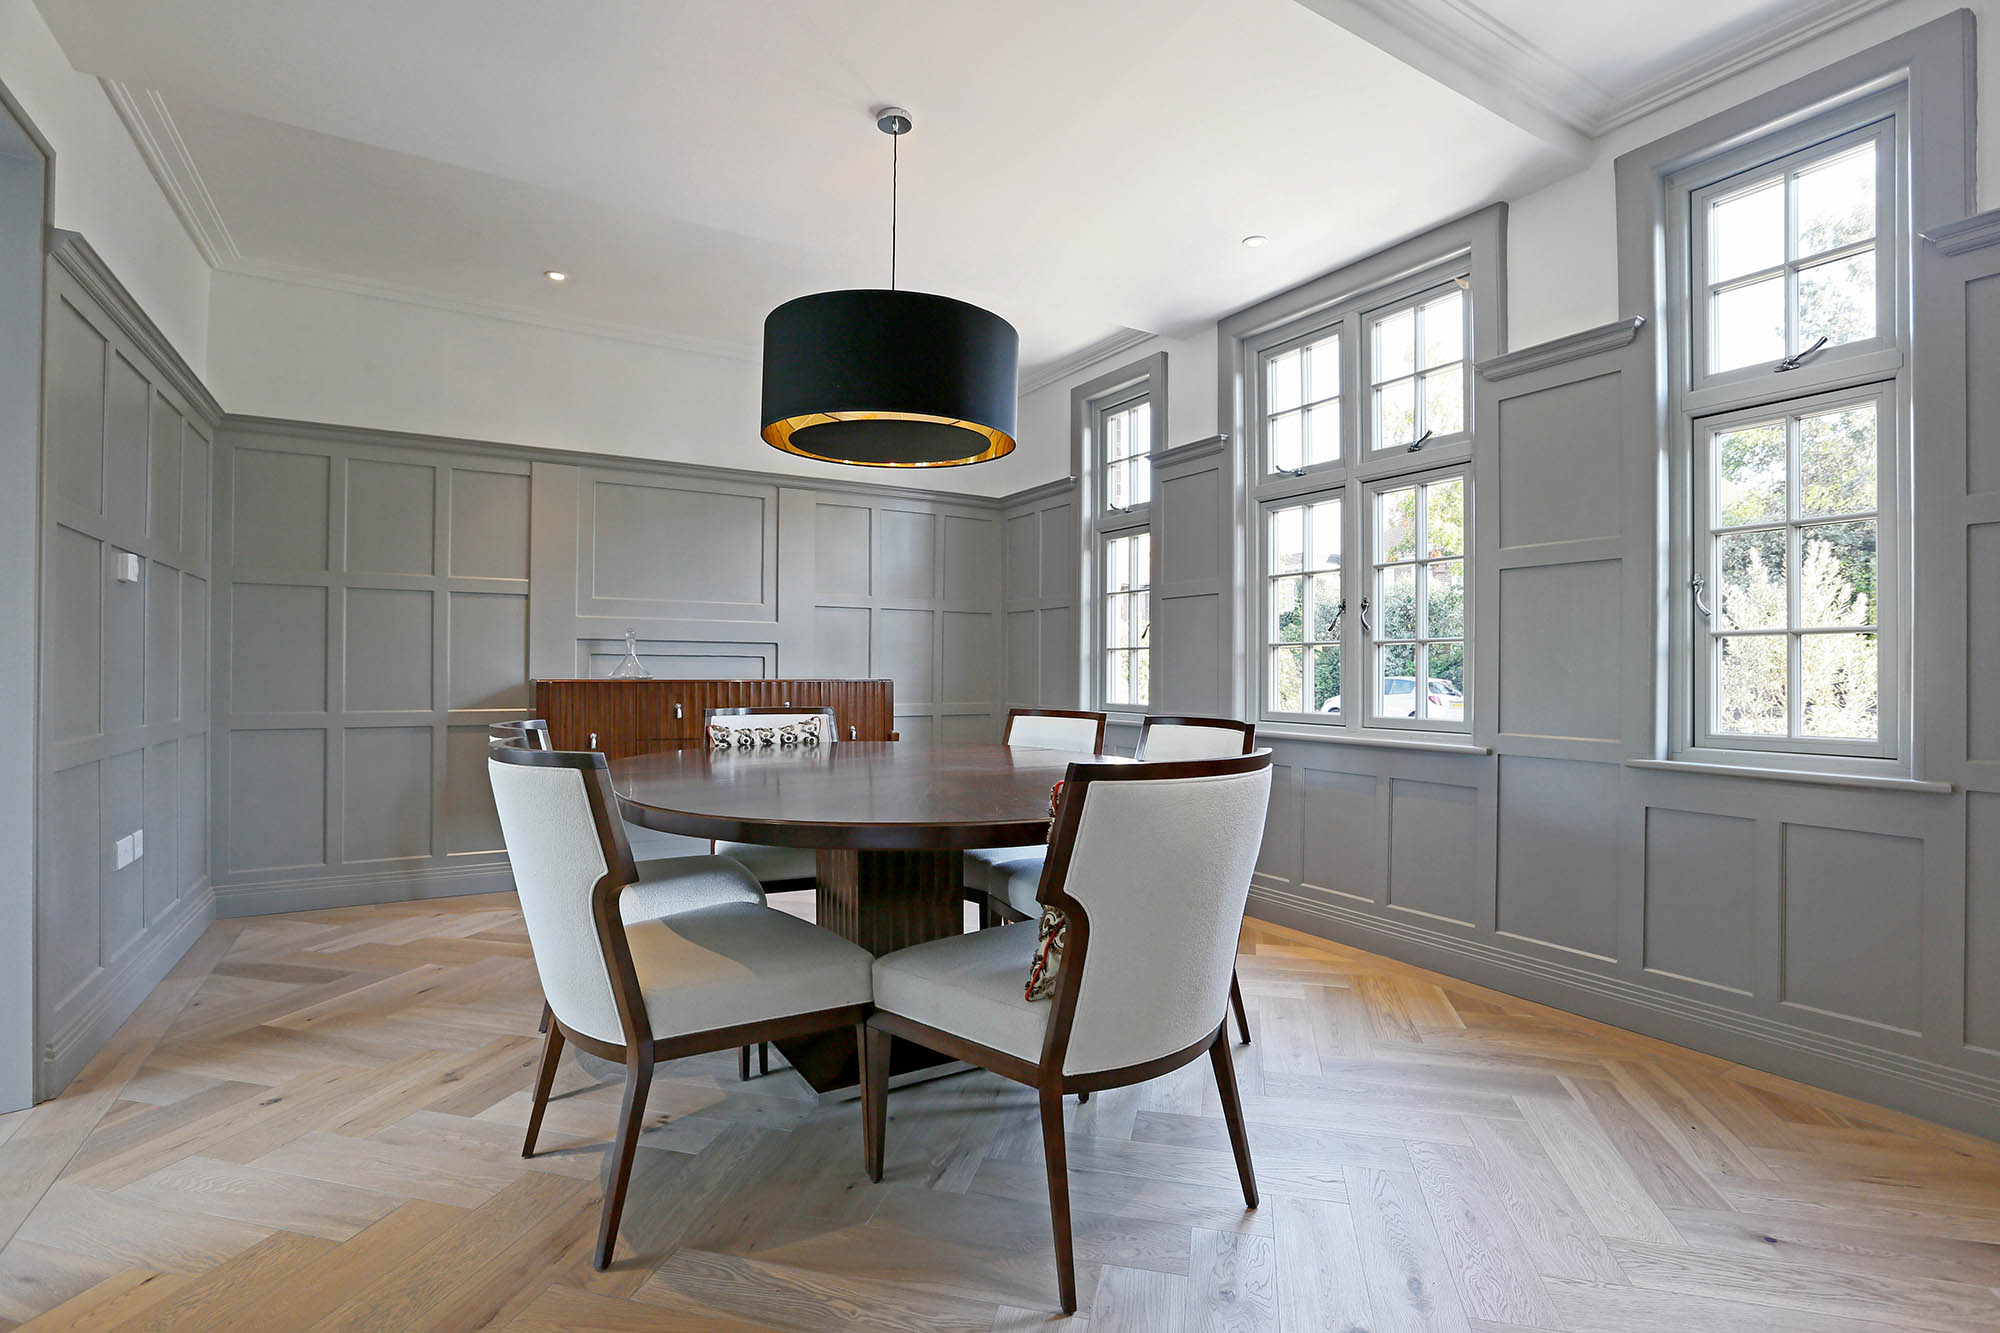 Formal dining room for Putney home restoration project with grey panelled walls and parquet flooring.